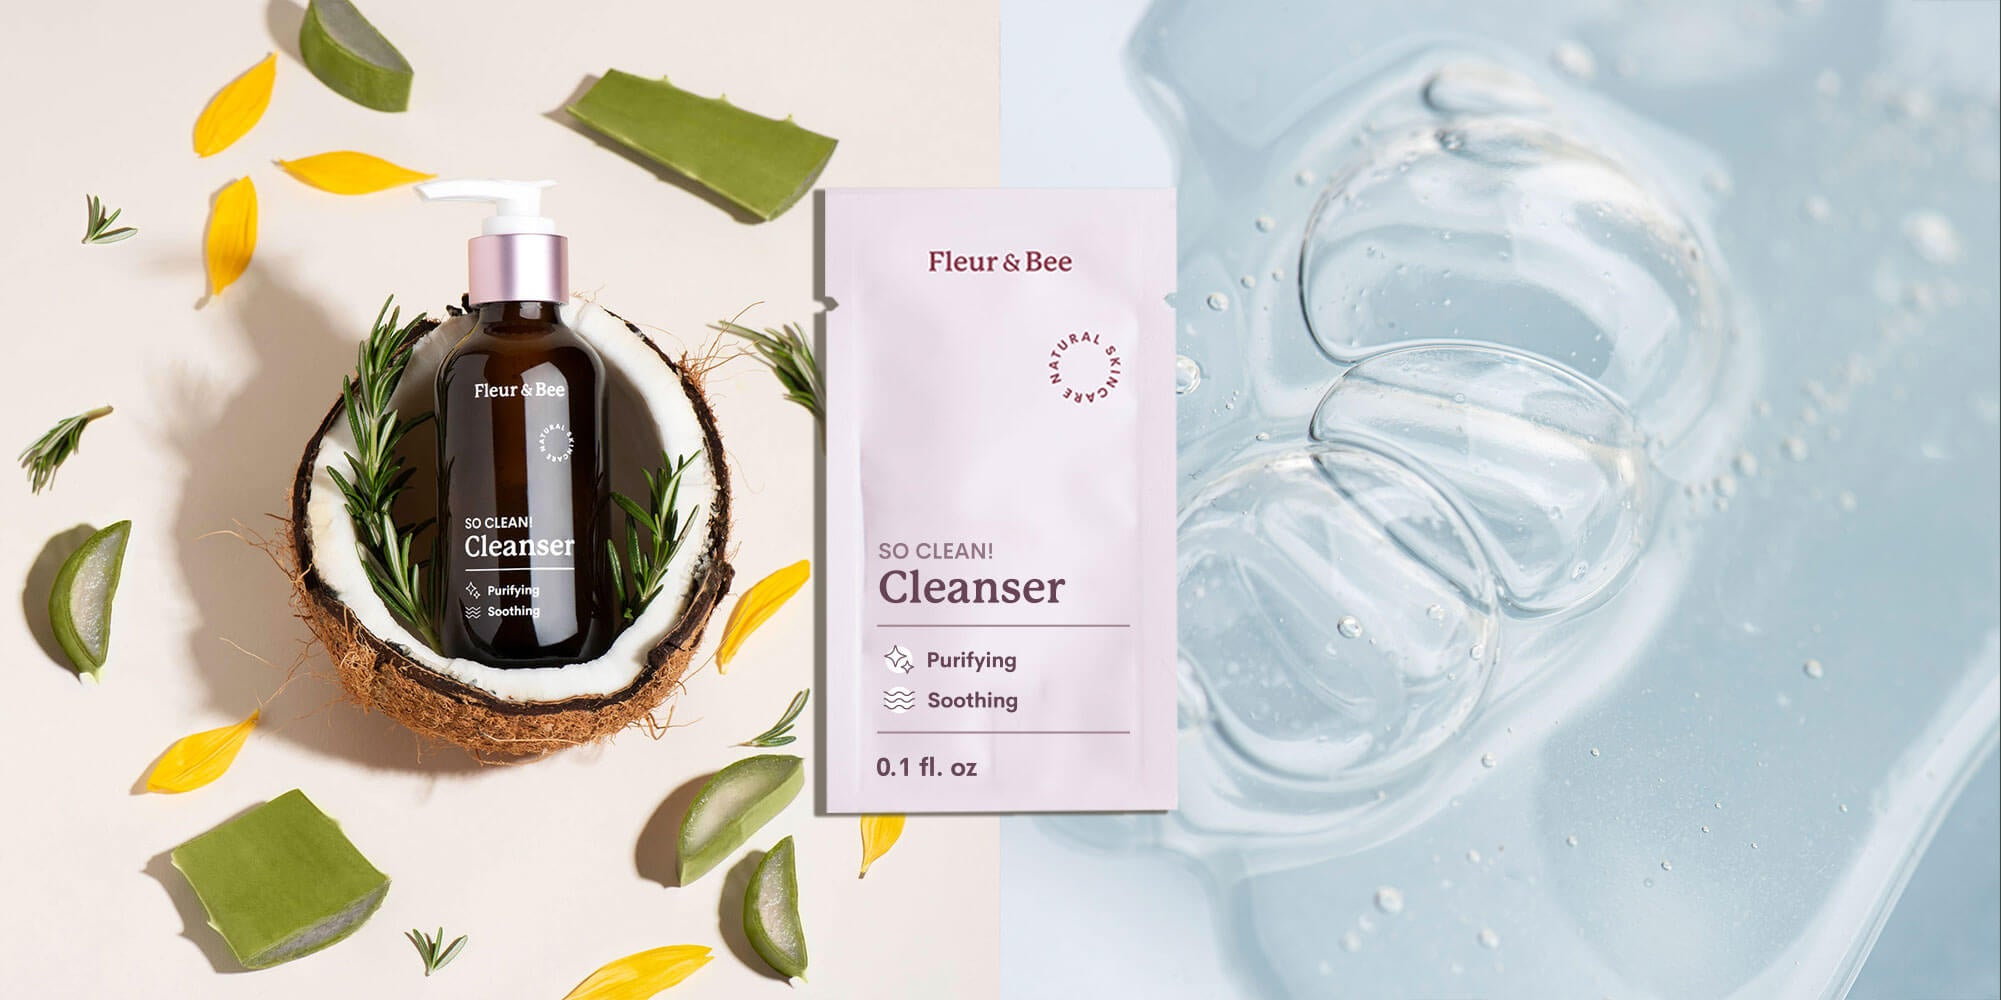 "So! Clean Sample"" /><br /><br /> <p>Washing your face is an essential part of any skin care routine. It helps to remove dirt, makeup and other impurities. It also helps set the stage for other skin care products so they can be properly absorbed.</p> <p>Our everyday facial cleanser, <a href="